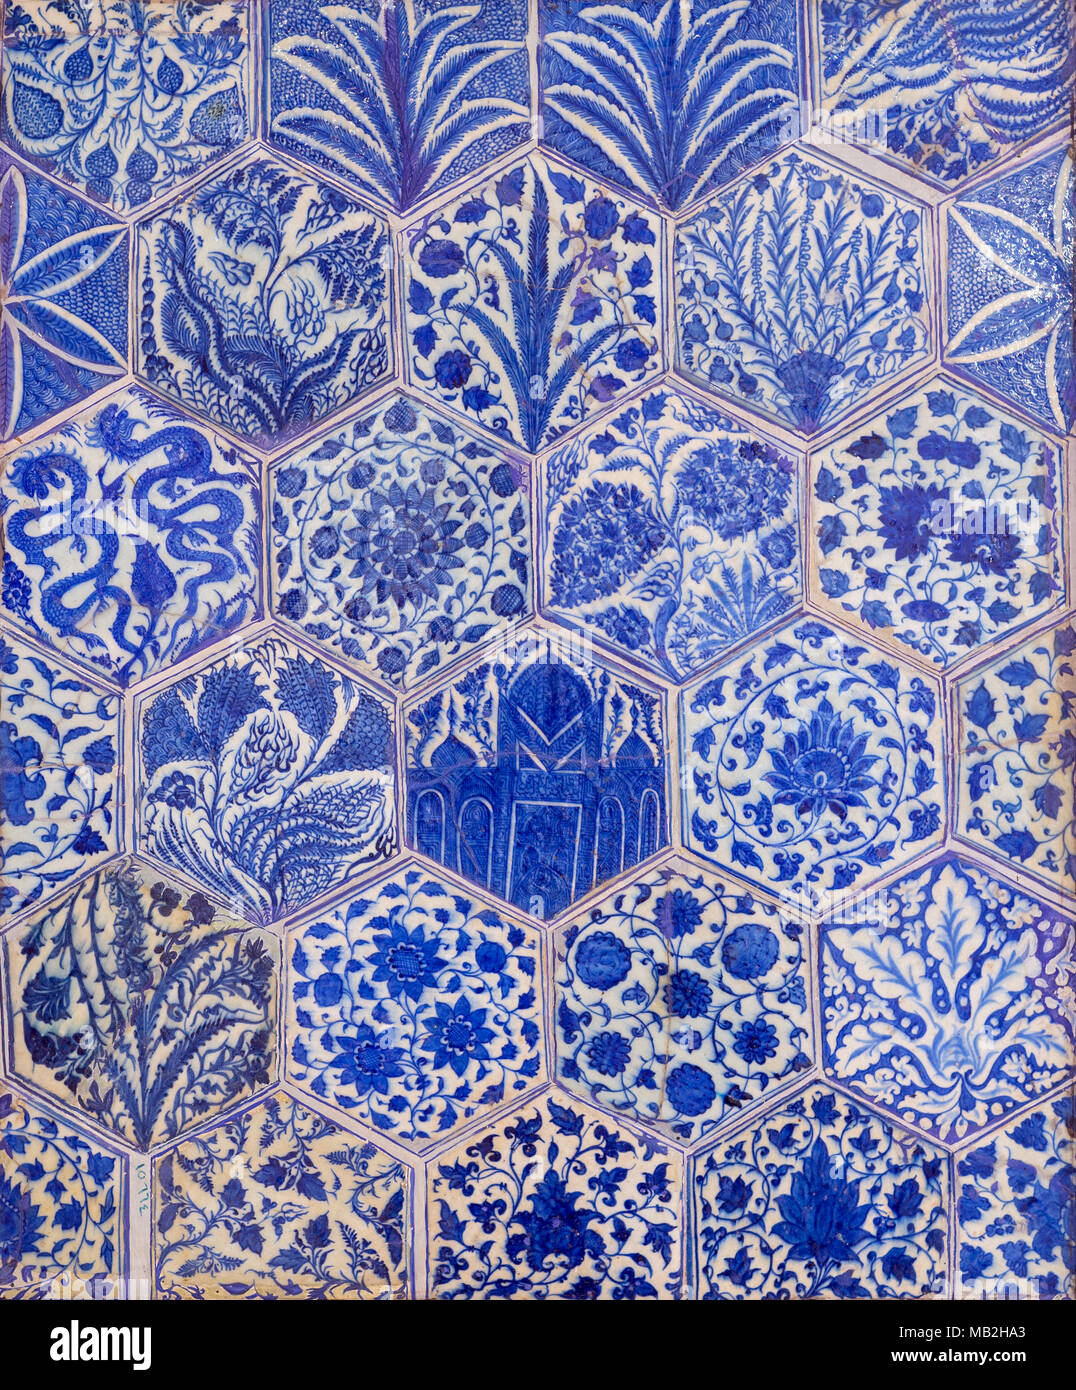 Ottoman era style glazed ceramic tiles decorated with floral ...